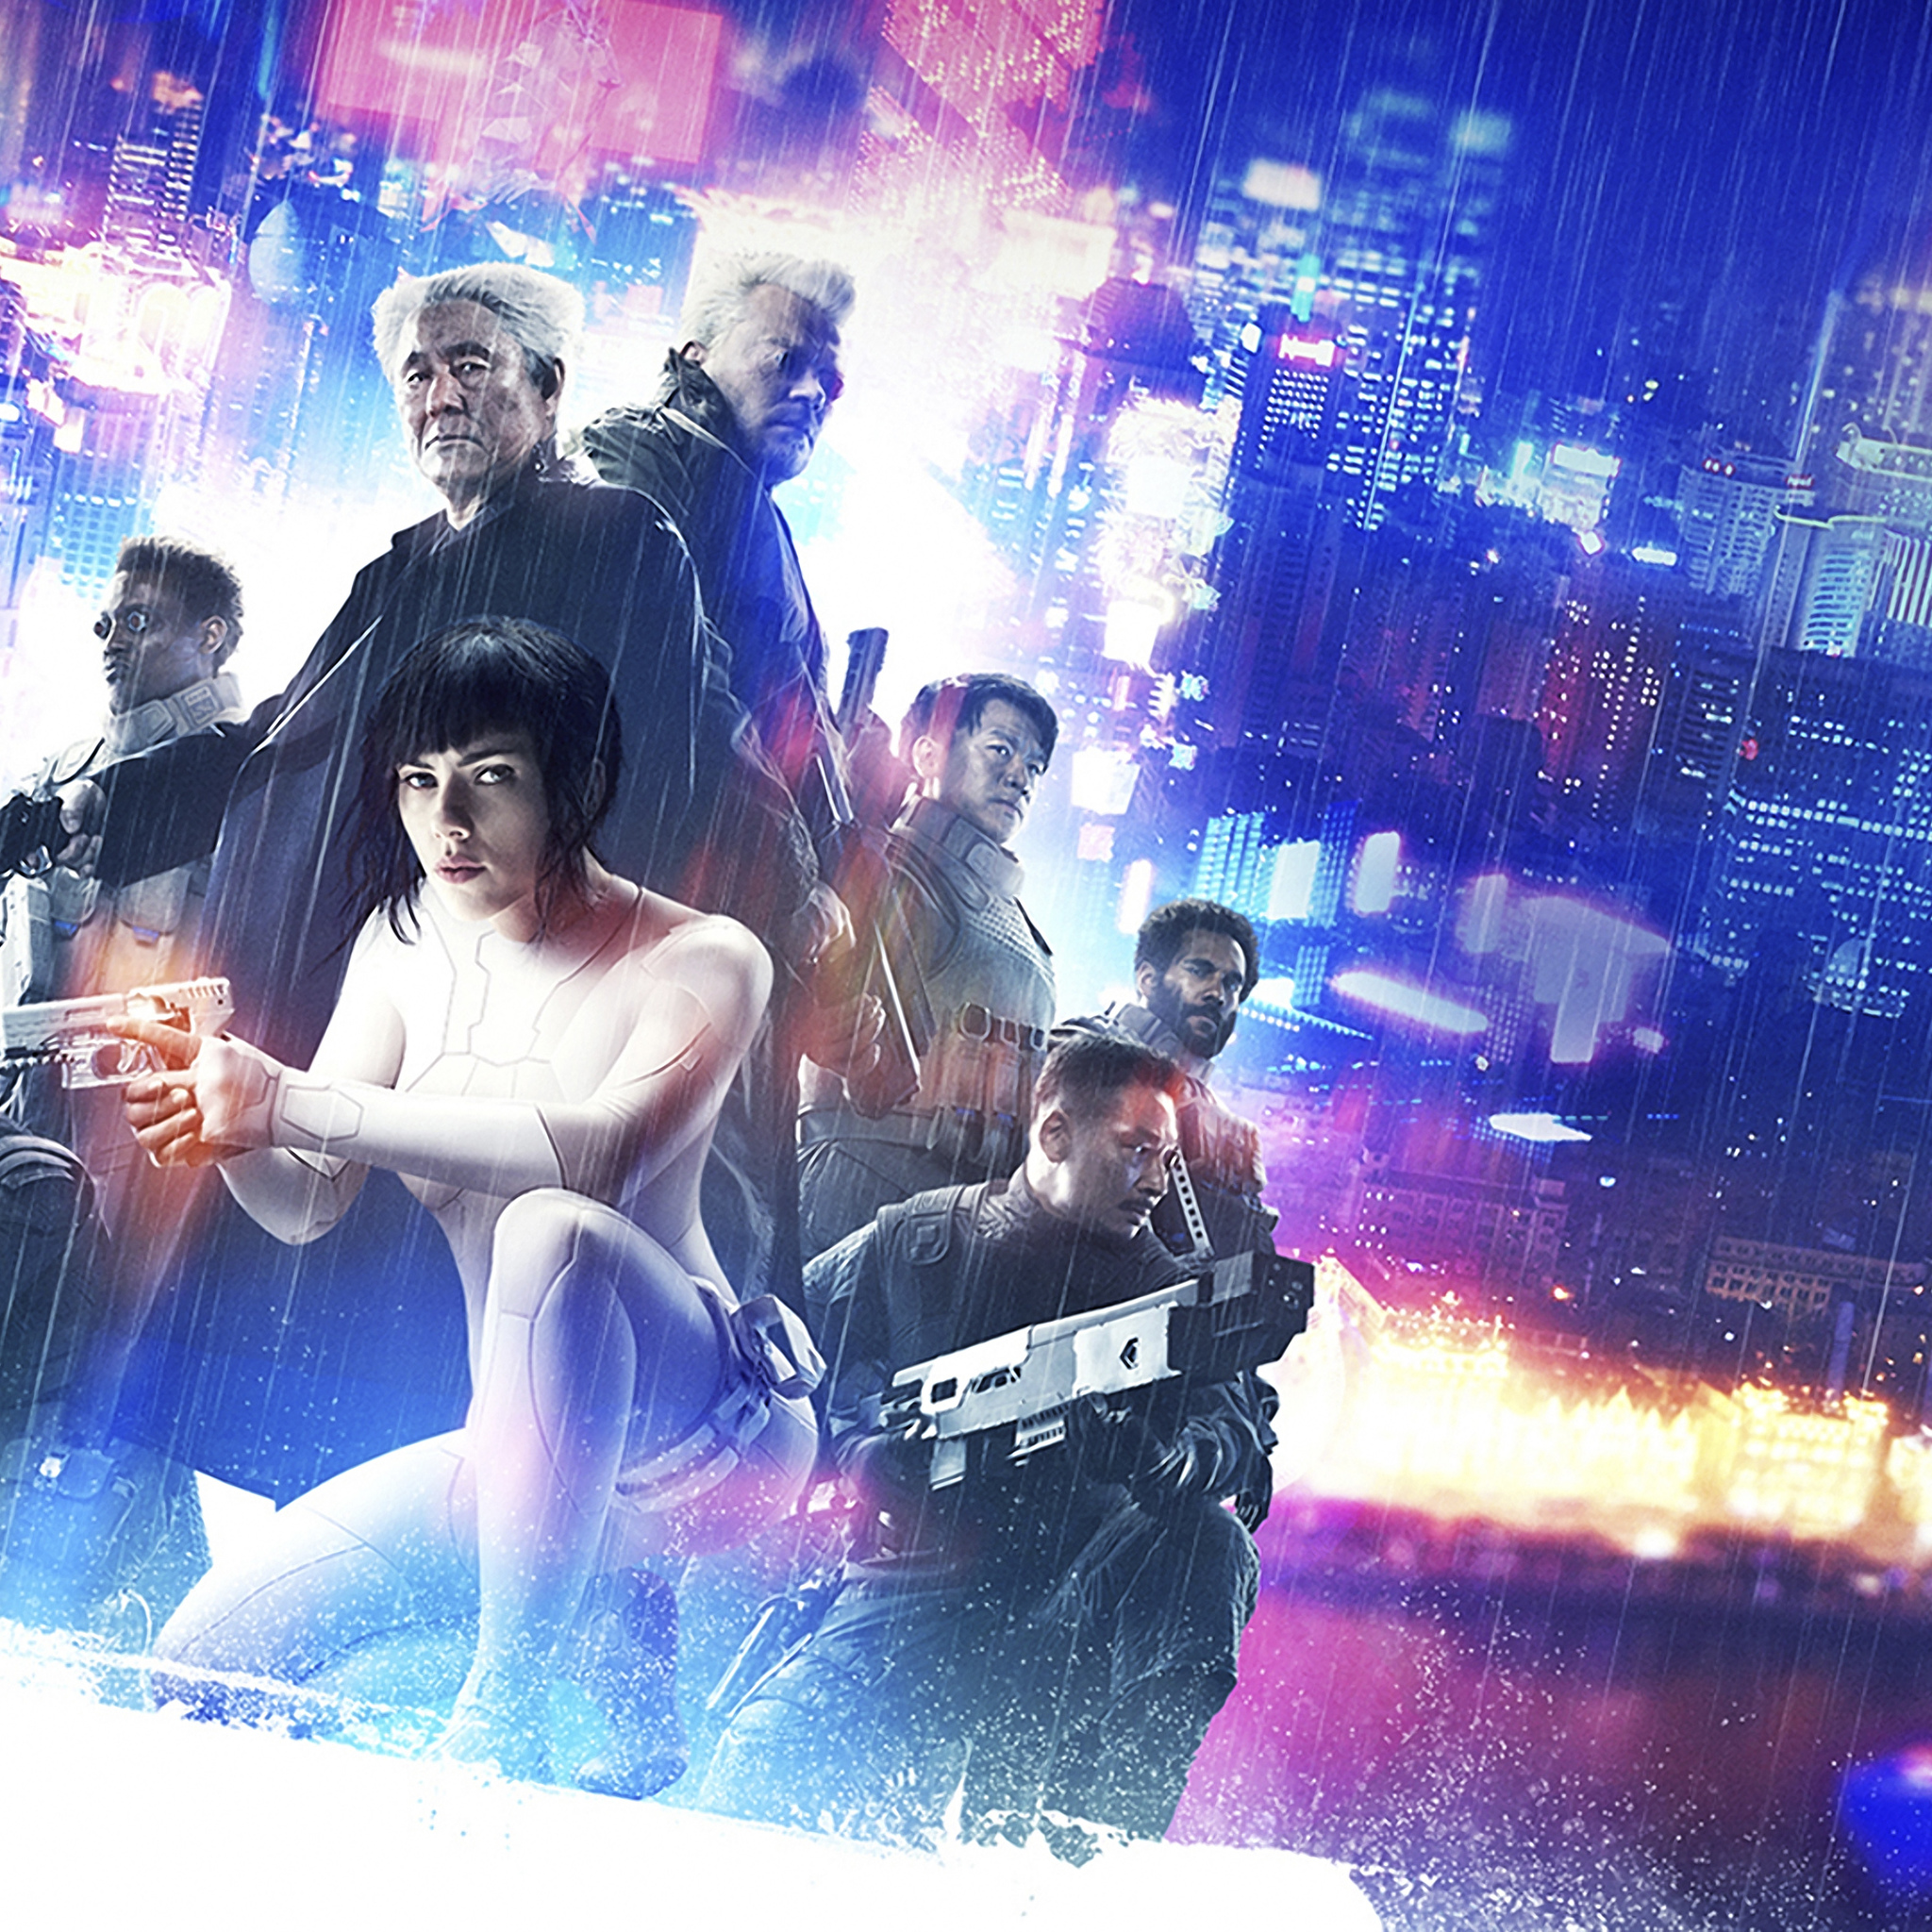 Ghost In The Shell Hd Poster